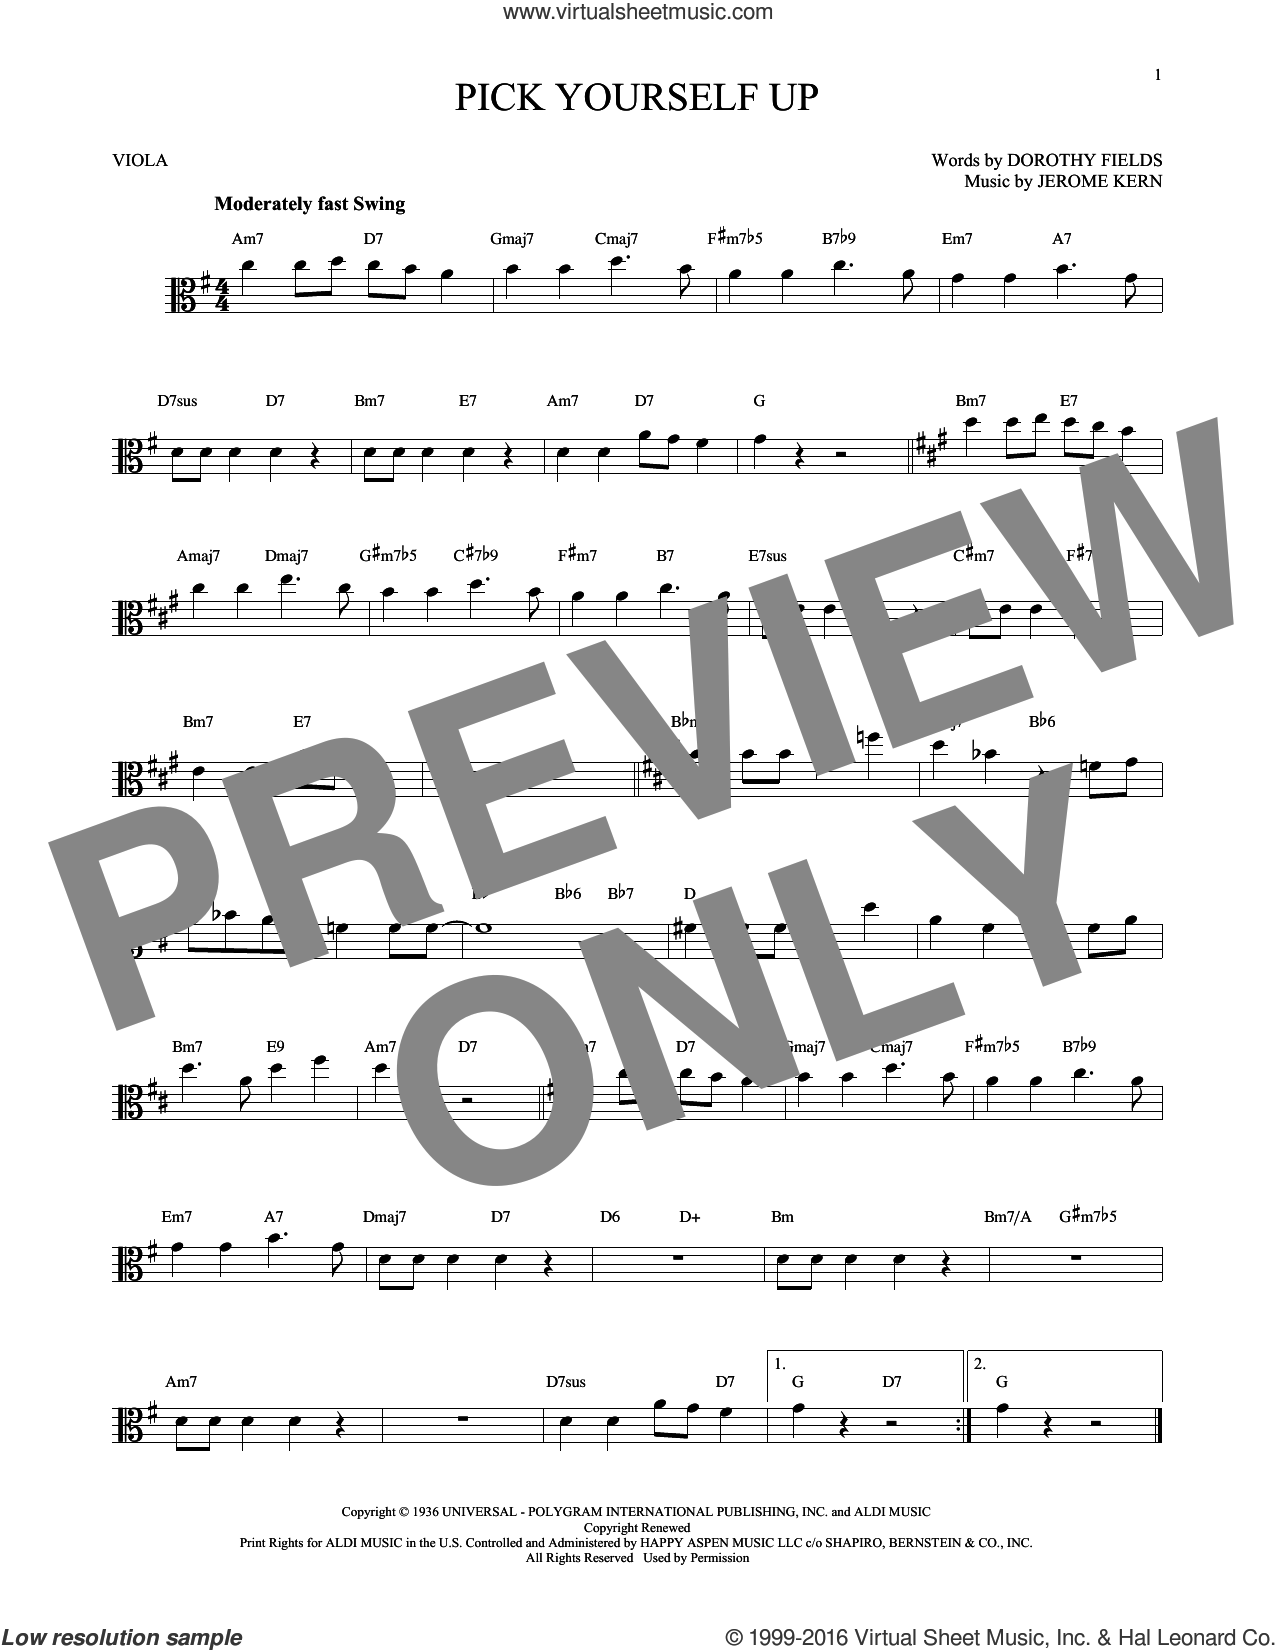 Pick Yourself Up sheet music for viola solo by Jerome Kern and Dorothy Fields, intermediate skill level